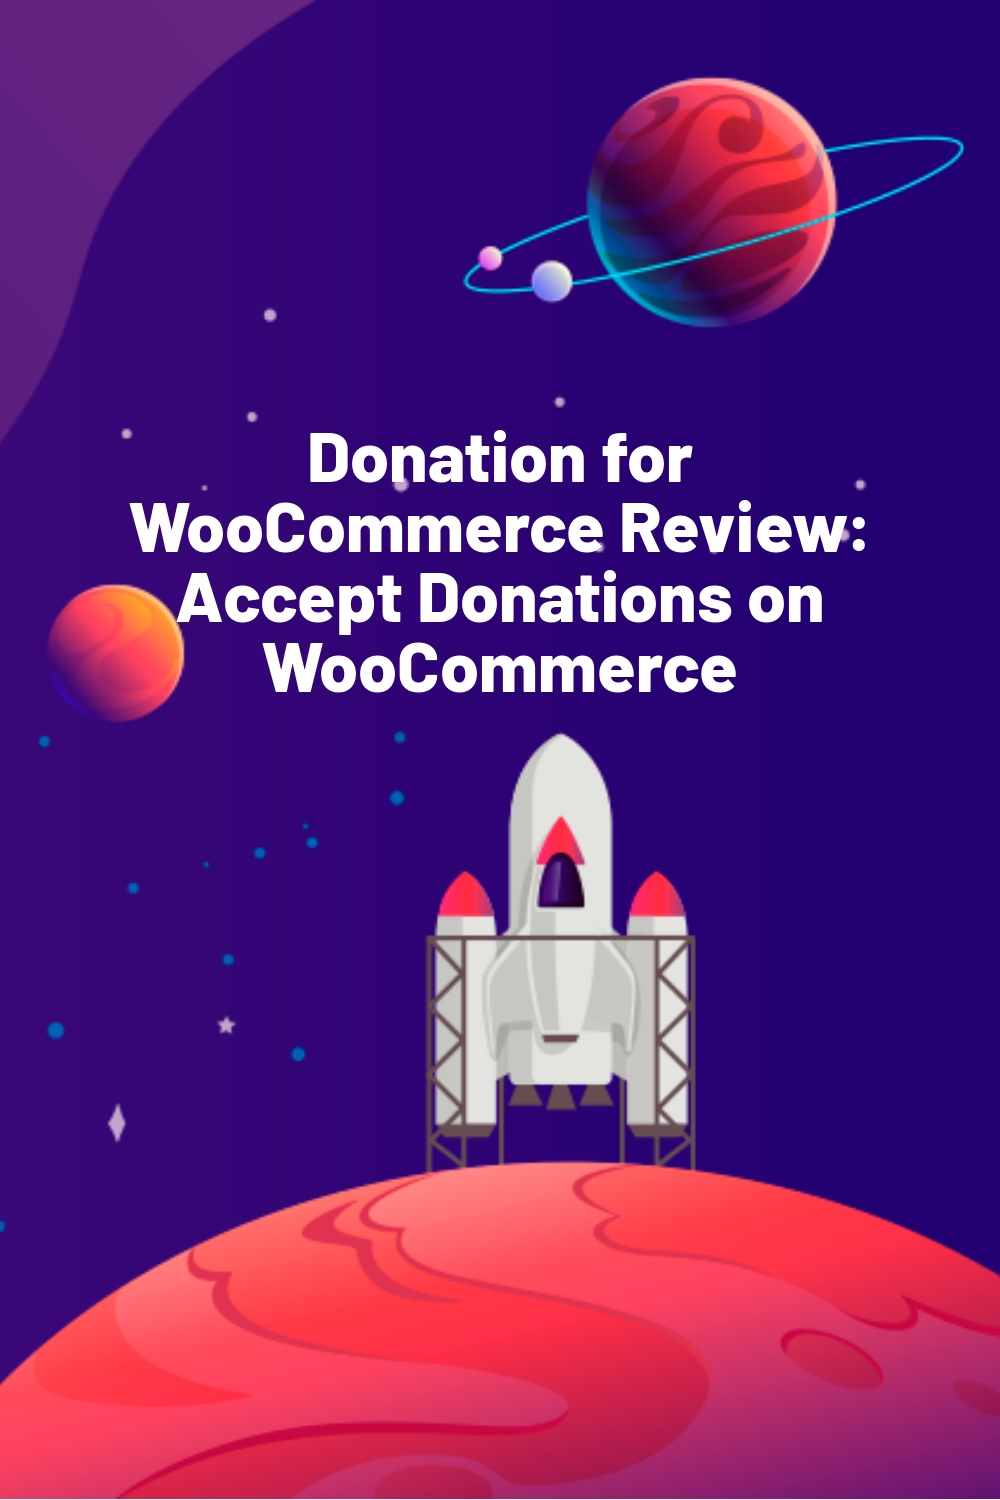 Donation for WooCommerce Review: Accept Donations on WooCommerce